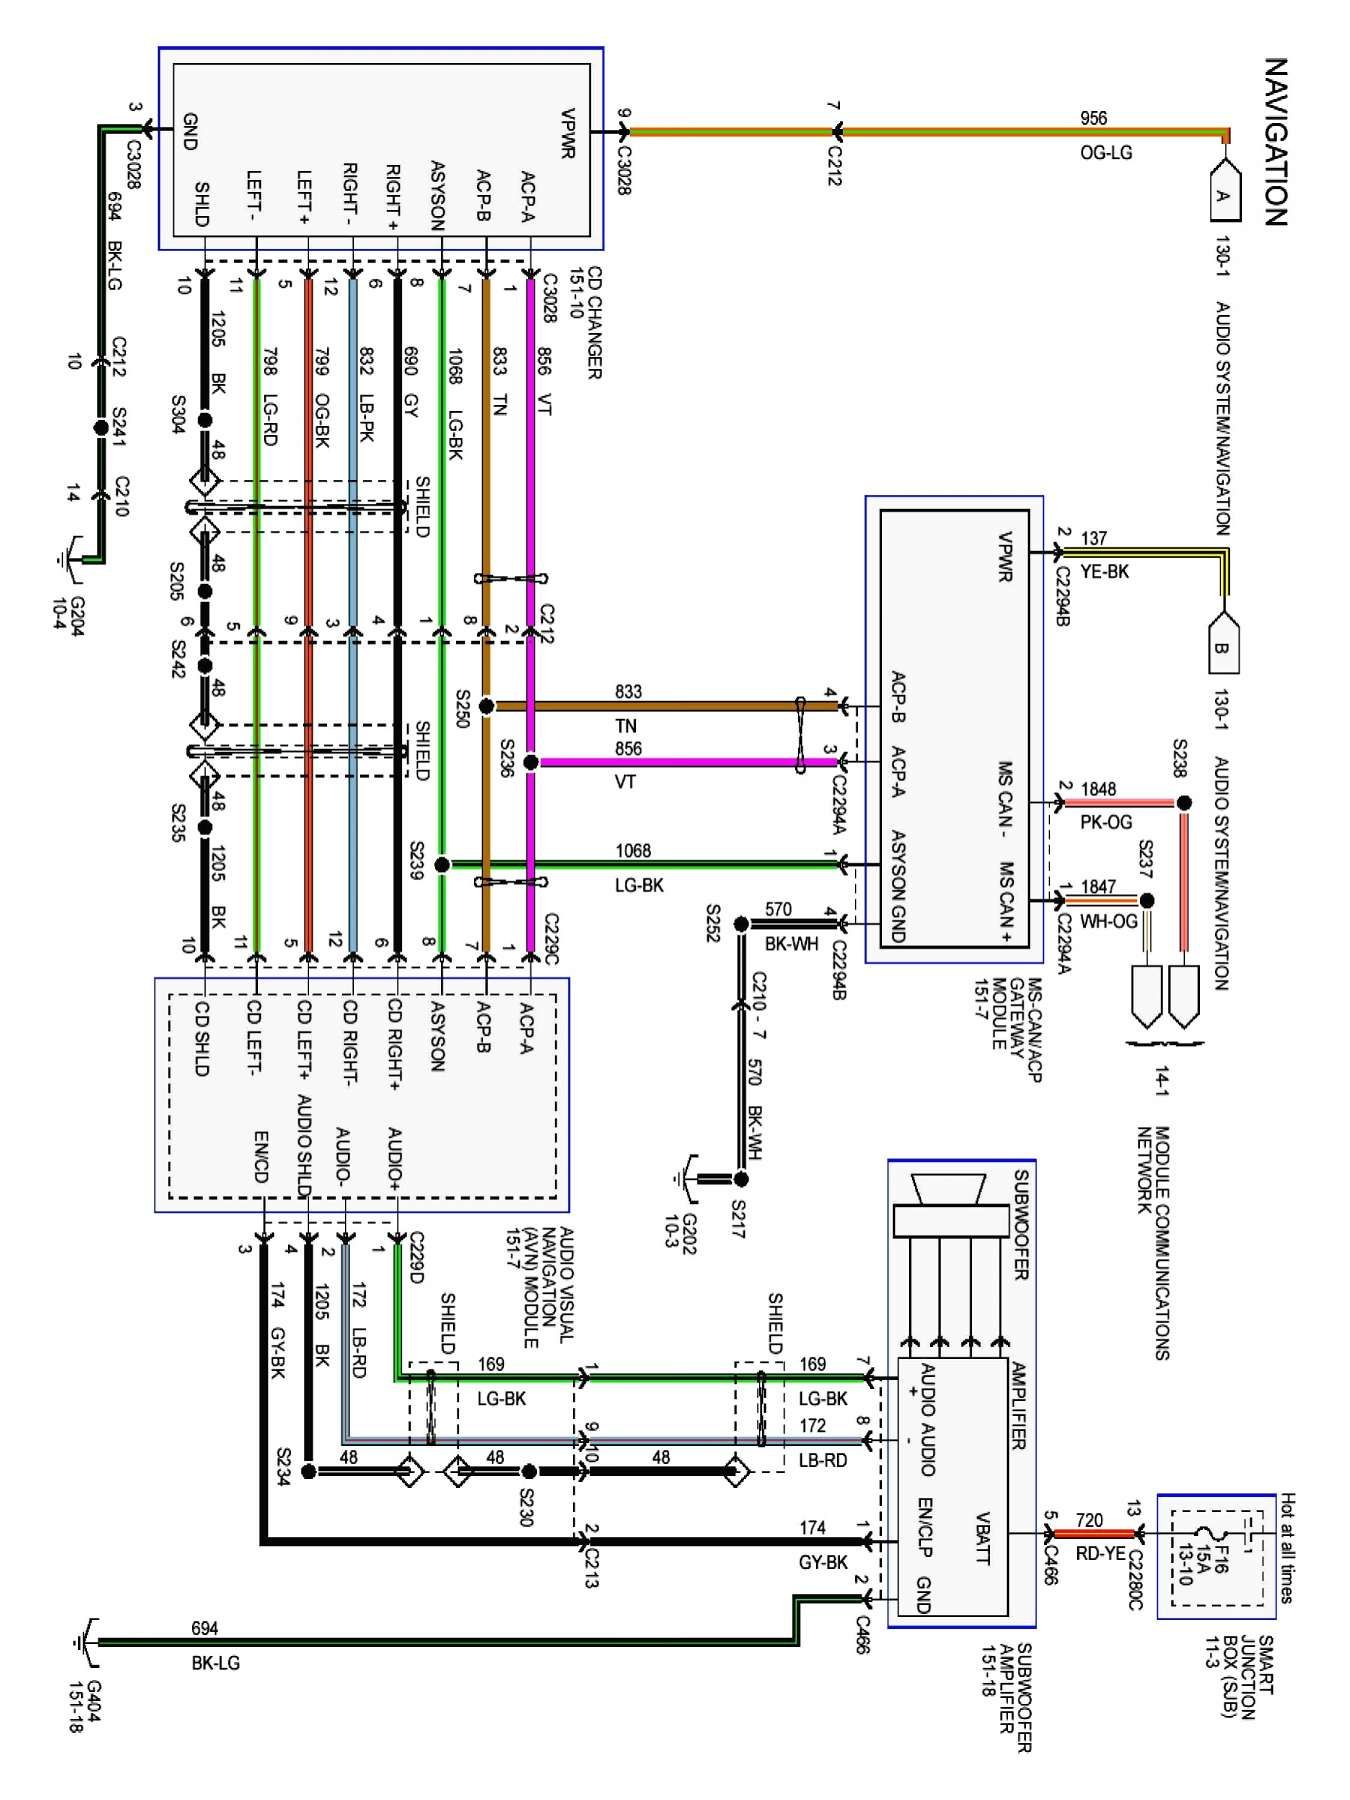 [ANLQ_8698]  16+ Rusi Motorcycle Wiring Diagram - Motorcycle Diagram - Wiringg.net in  2020 | Ford expedition, Electrical wiring diagram, Electrical diagram | Wiring Diagram Of Rusi Motorcycle |  | www.pinterest.ph